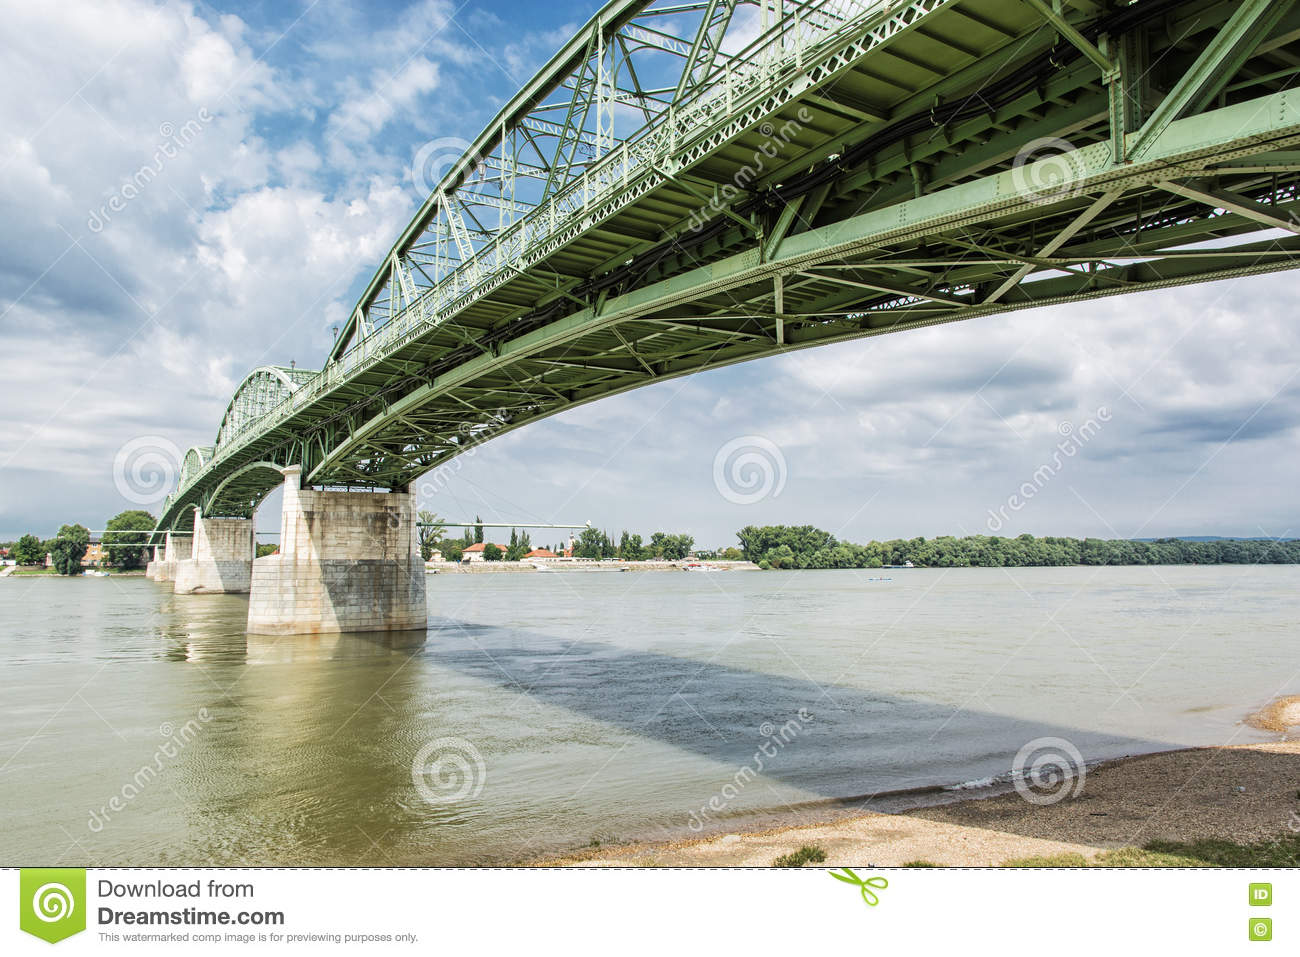 Maria Valeria bridge from Esztergom, Hungary to Sturovo, Slovakia, architectural scene